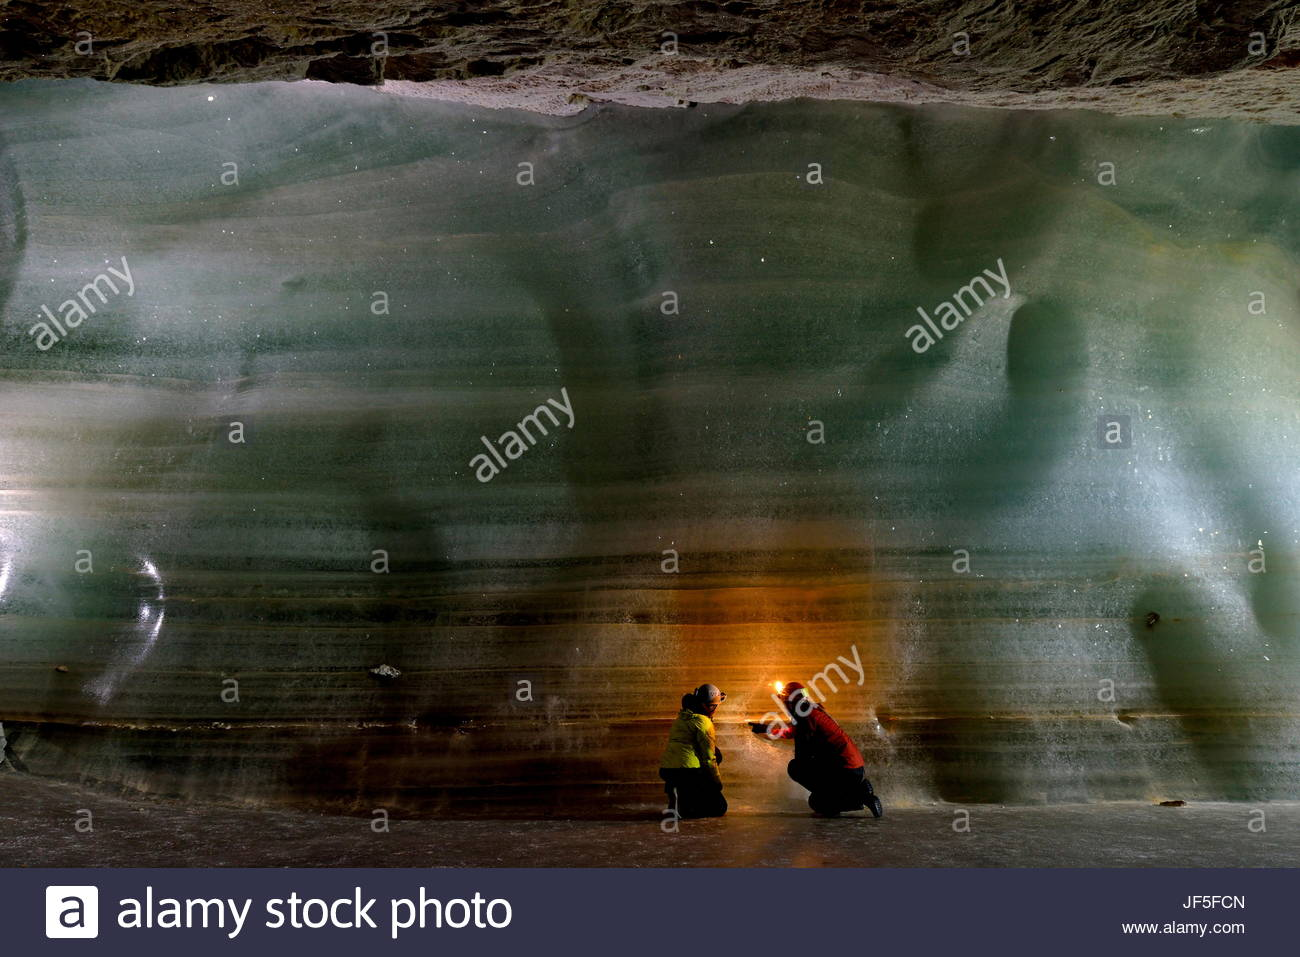 Scientists examine the thick bed of ice for samples inside Eisriesenwelt Eishoehle in Werfen, Austria. - Stock Image